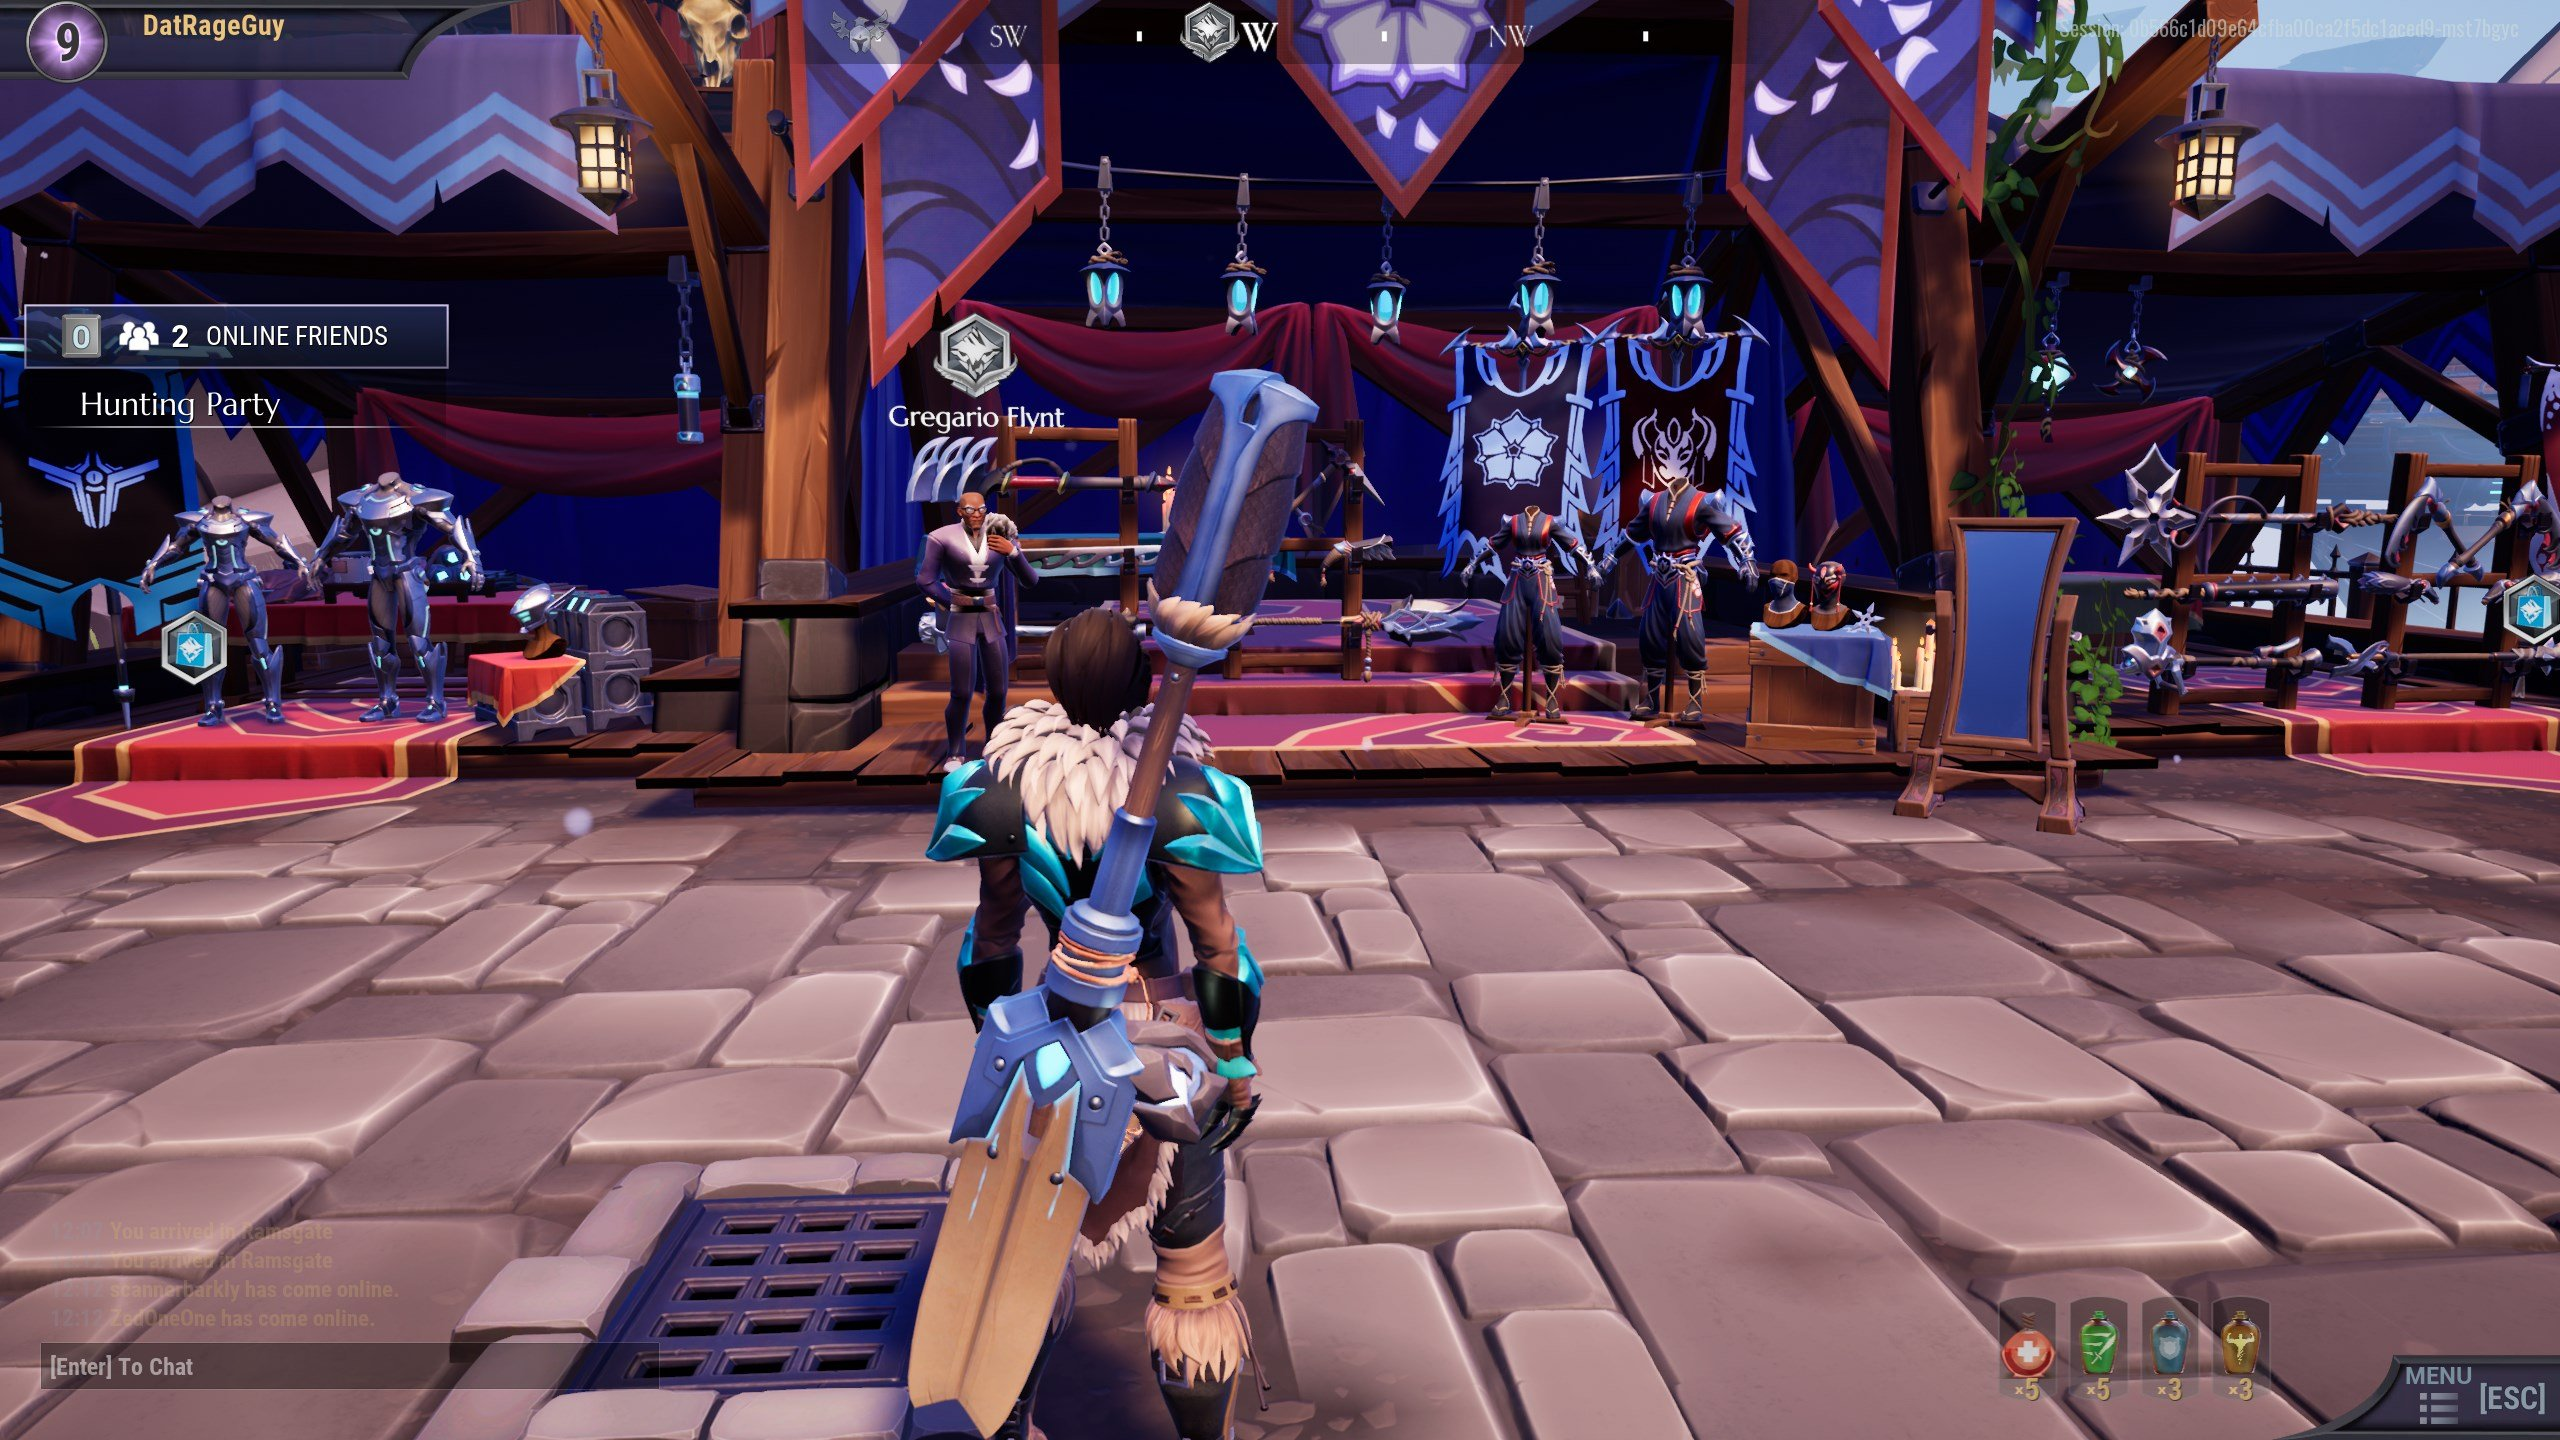 How to change appearance in Dauntless